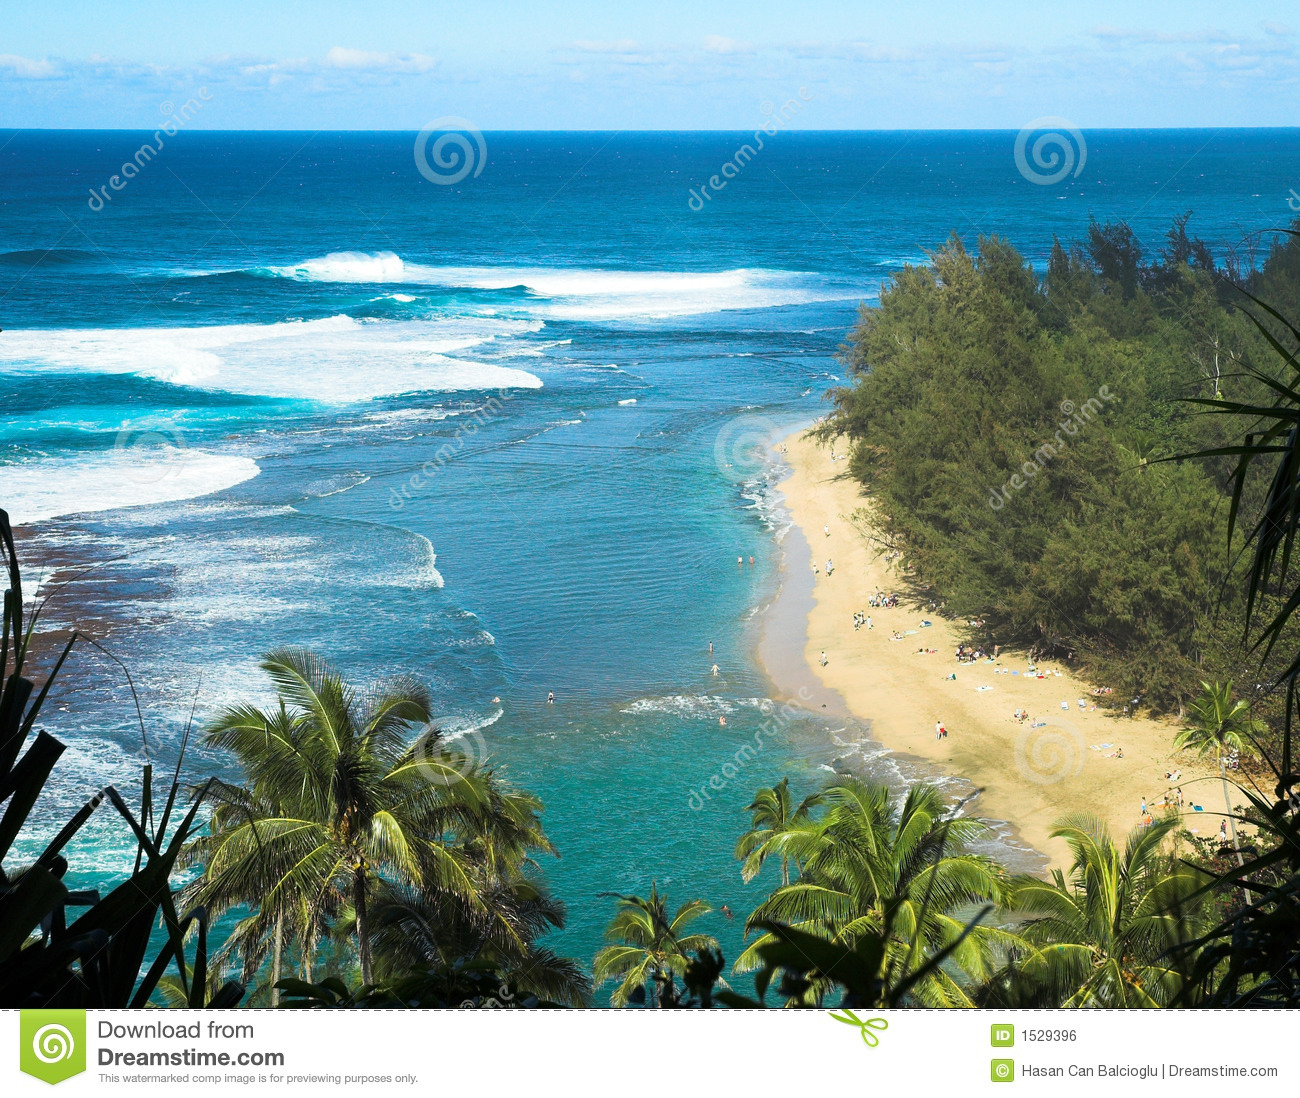 Kauai Beaches: Tropical Beach In Kauai, Hawaii Stock Photo